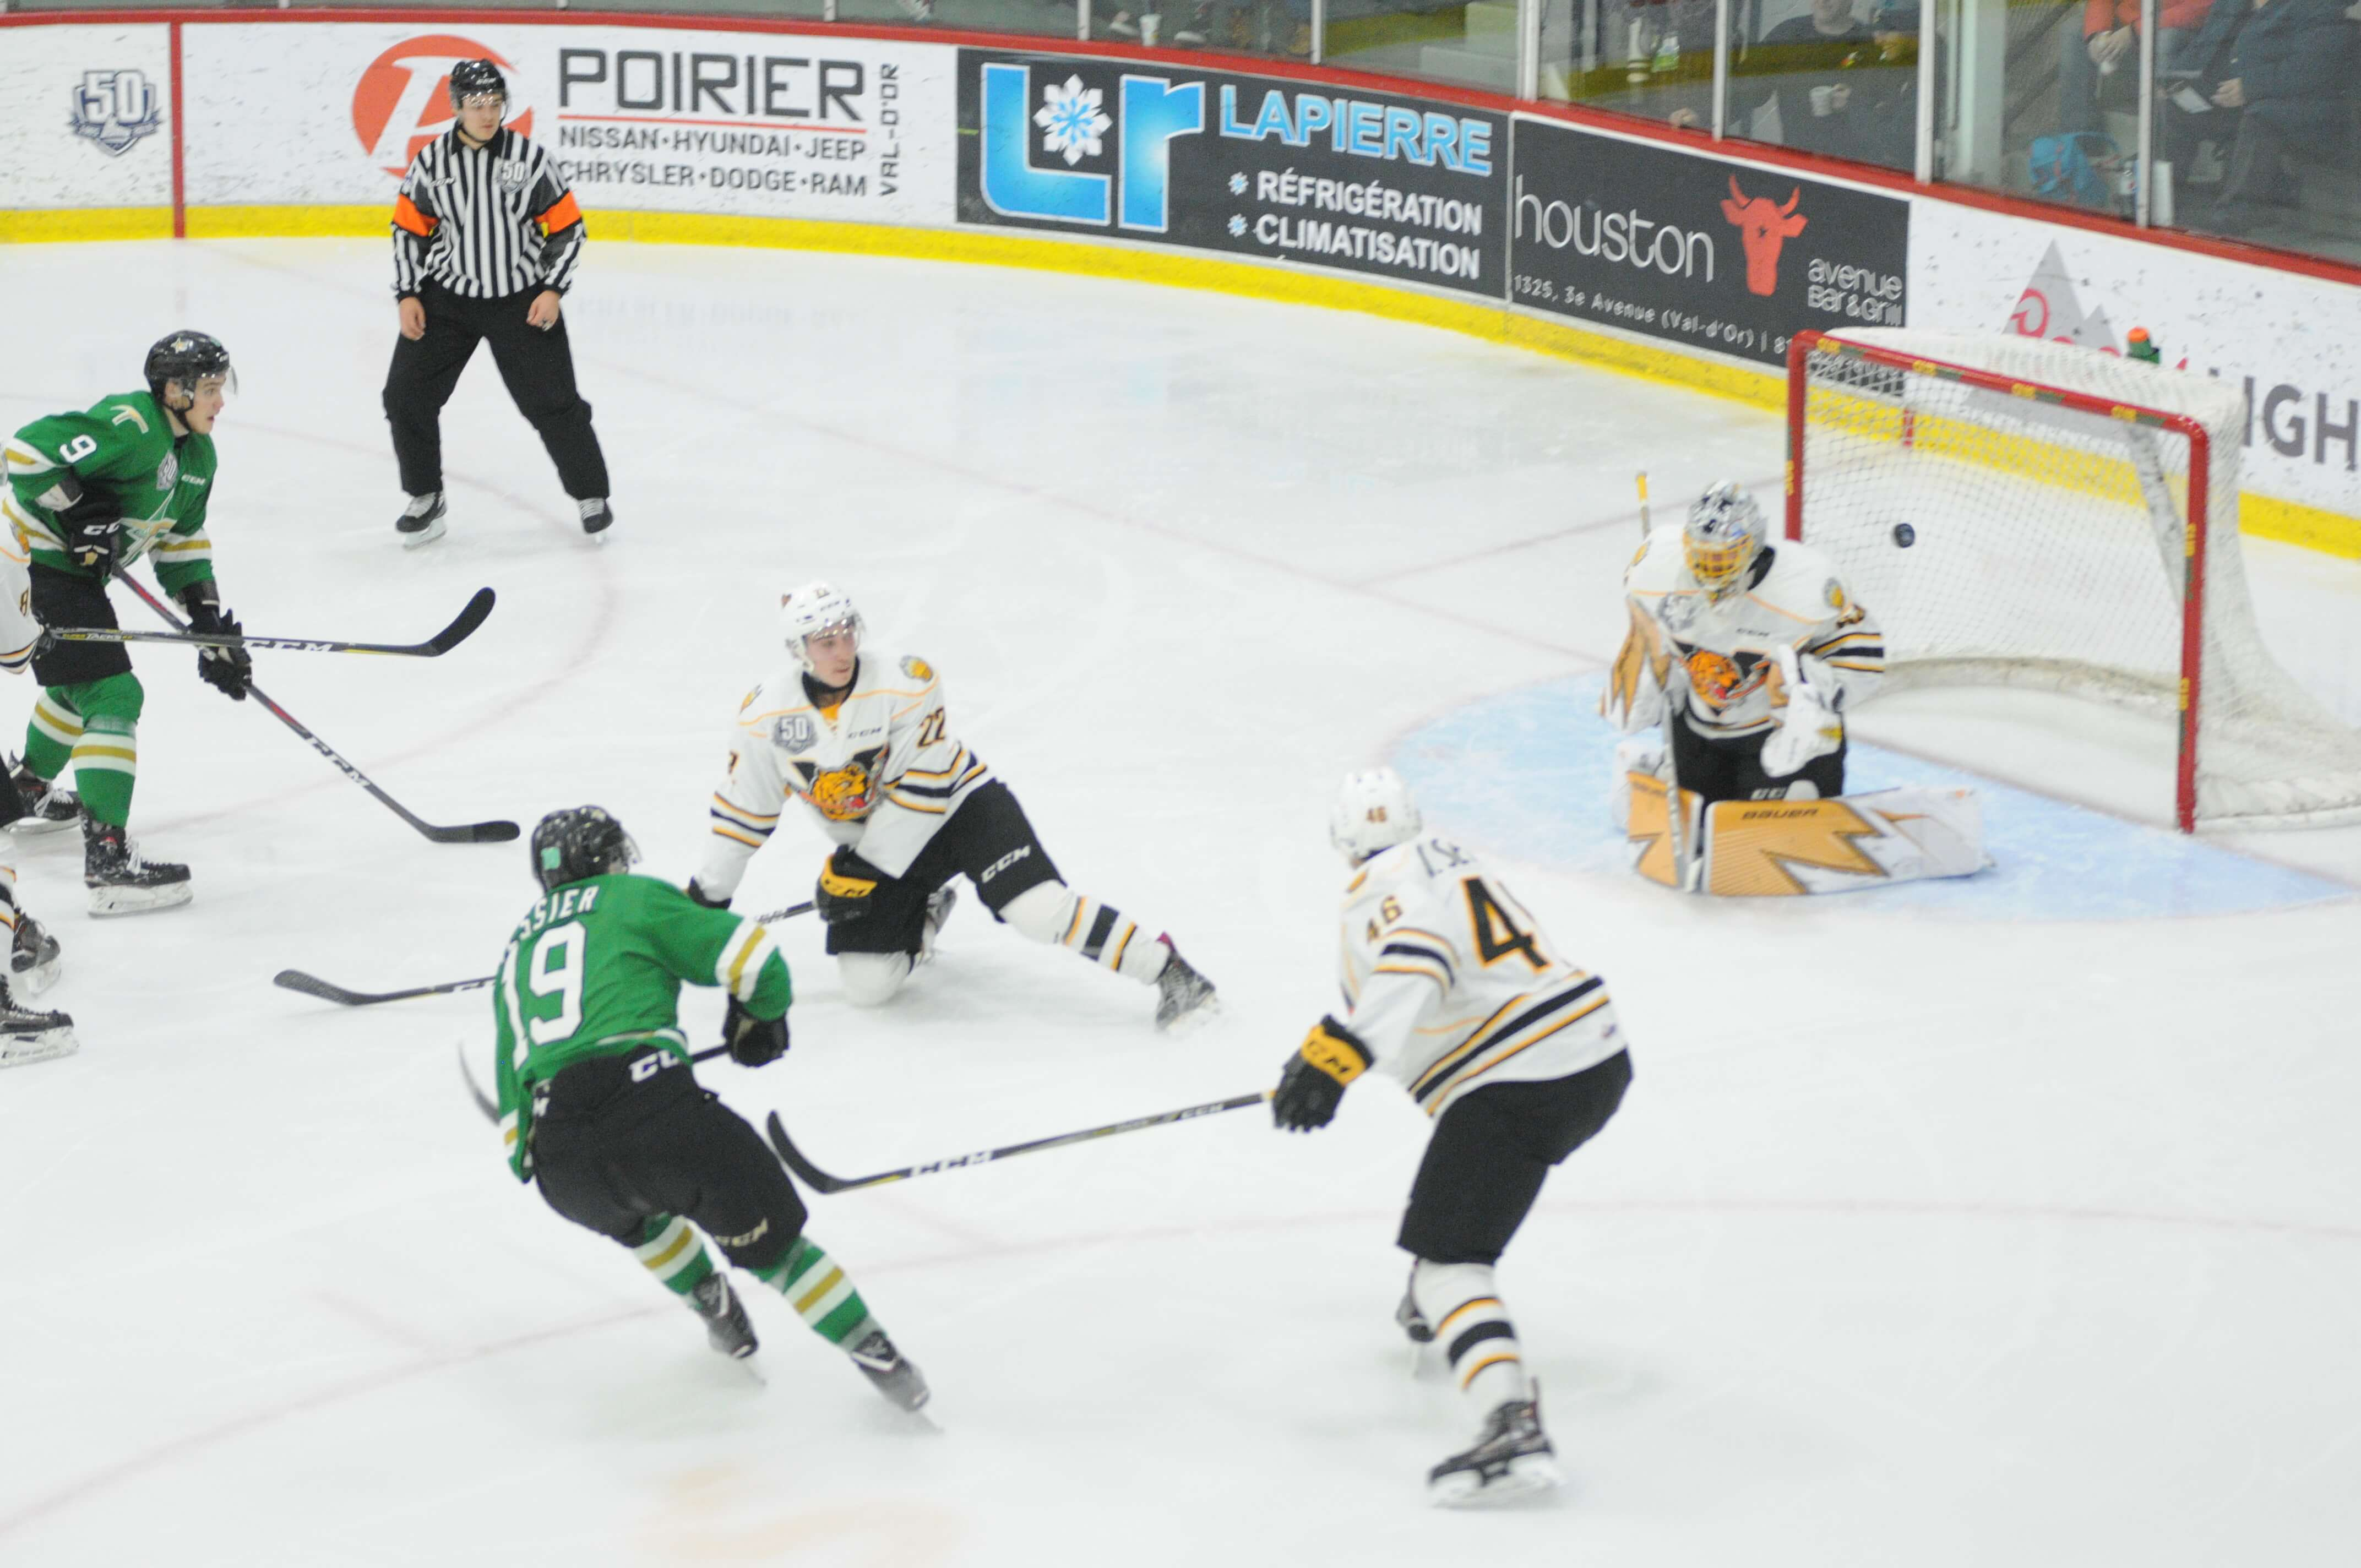 Tigres Victoriaville - Foreurs Val-d'Or